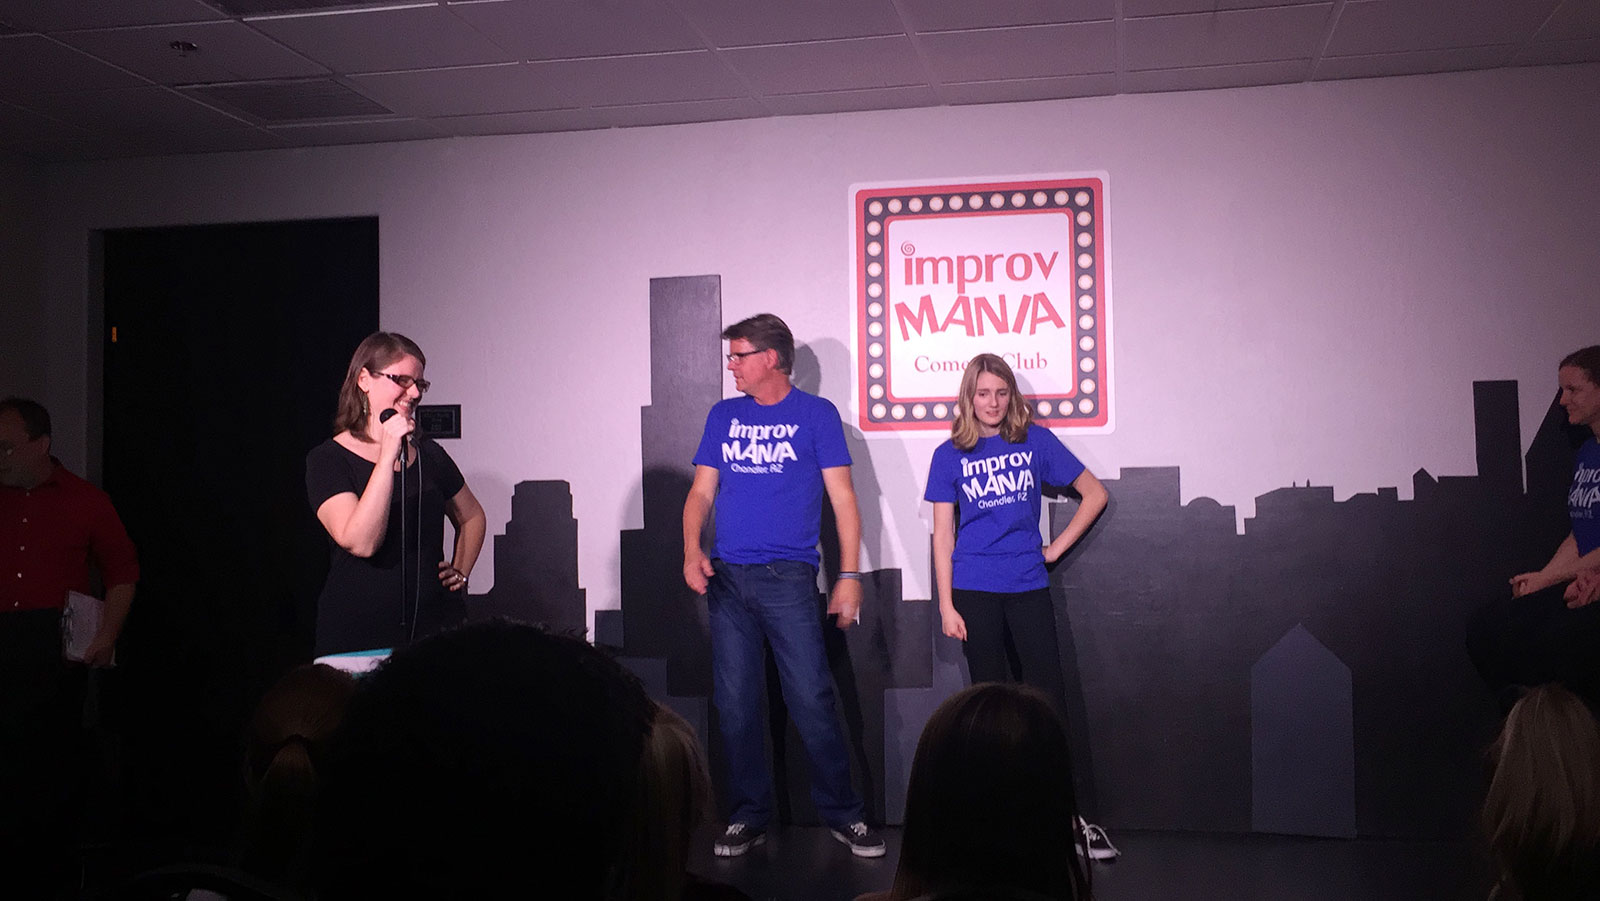 improvmania-chandler